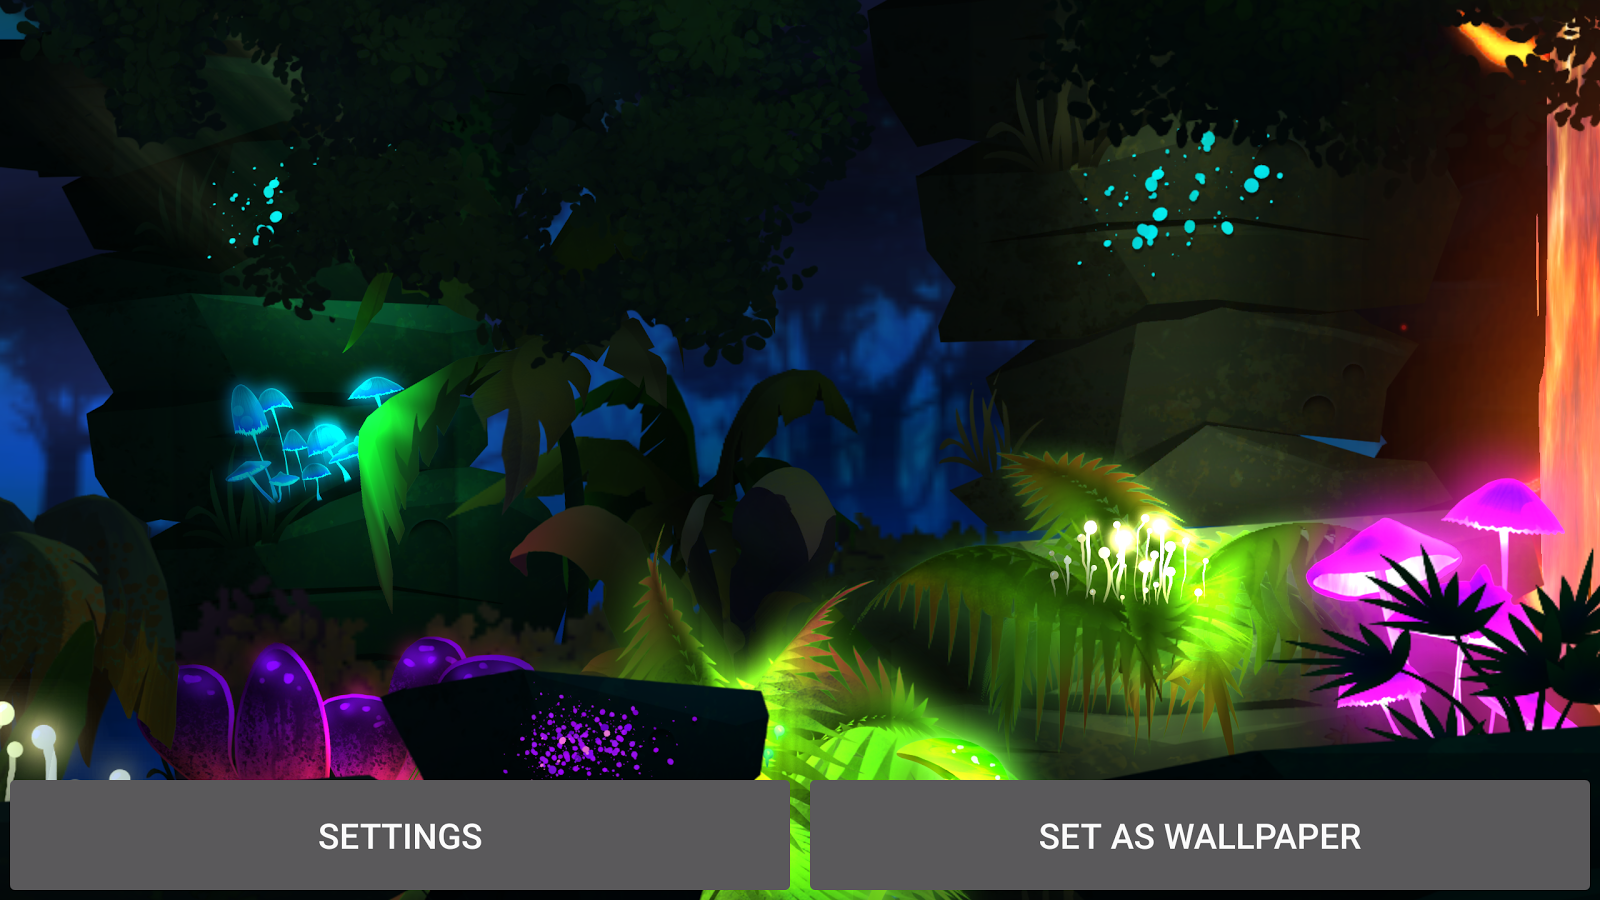 Firefly Jungle Live Wallpaper Screenshot 16